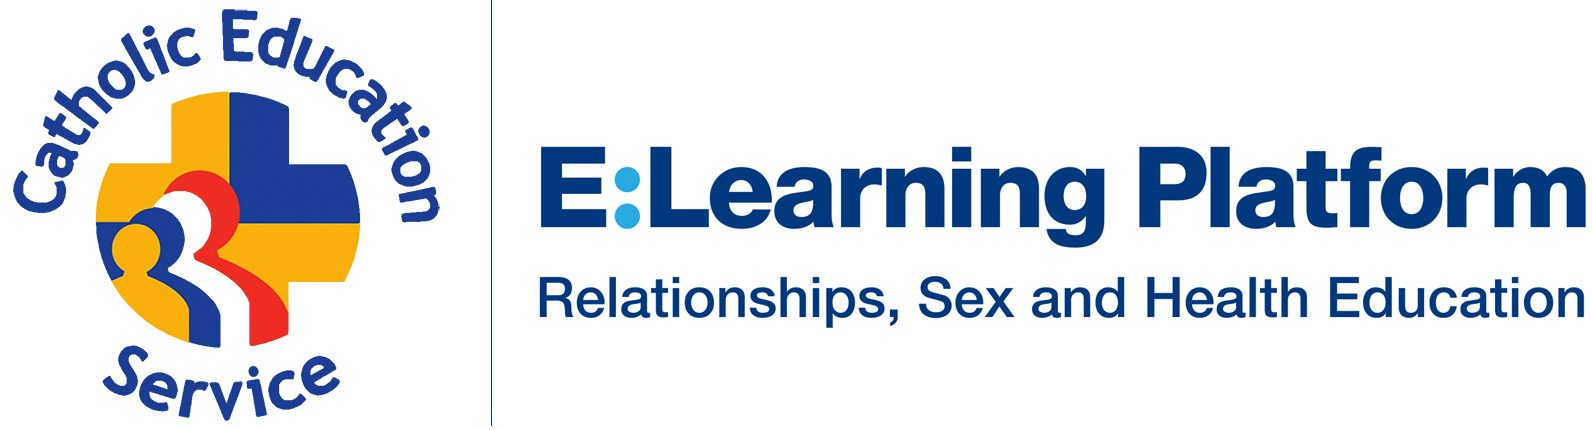 Ten Ten E-Learning Platform